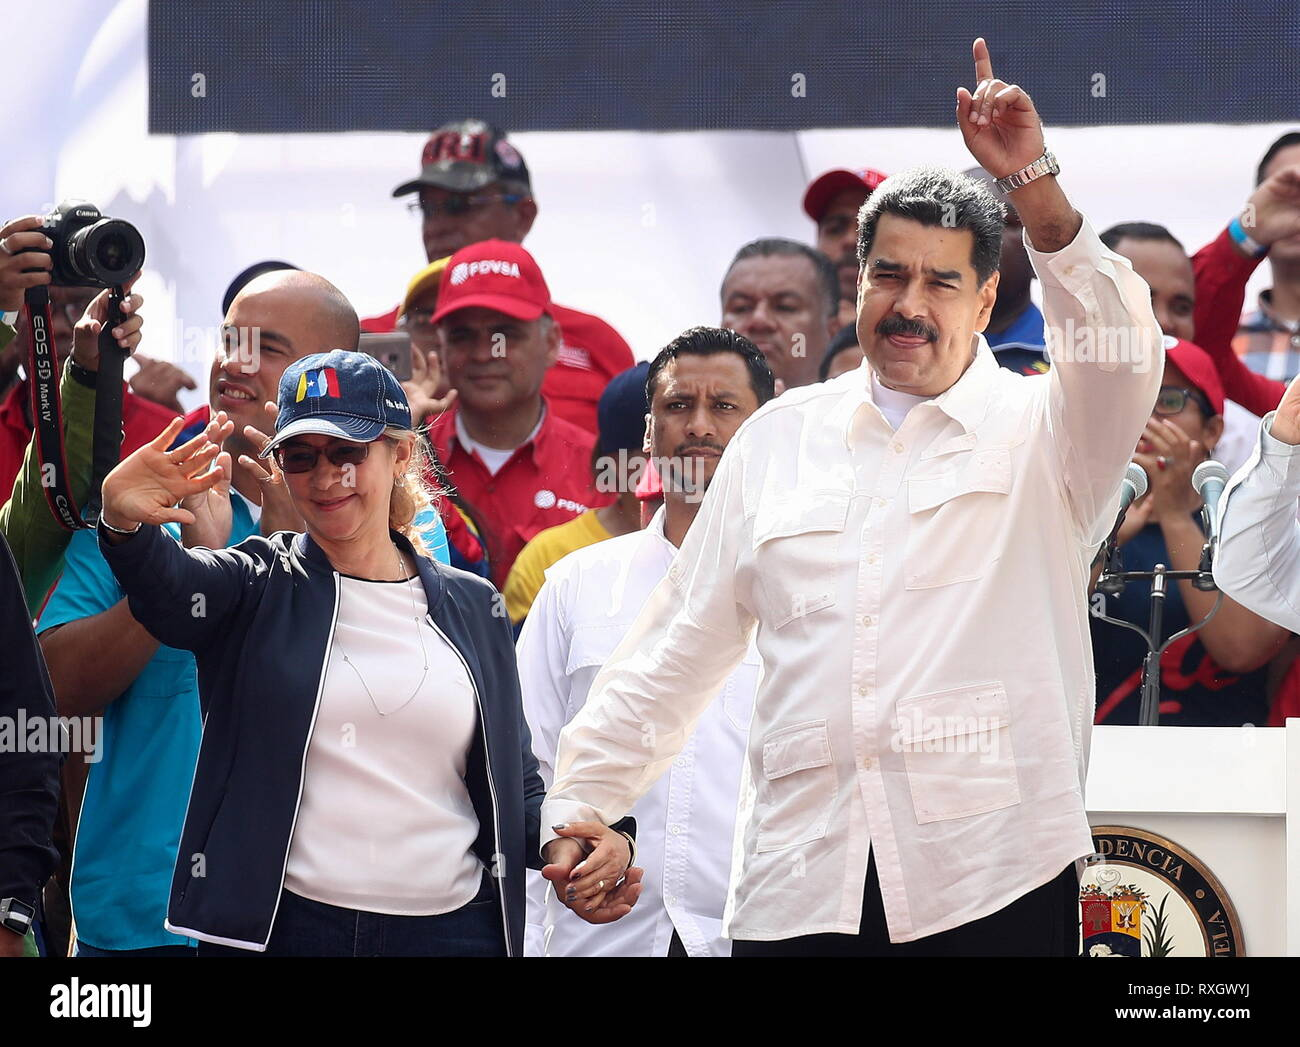 Caracas, Venezuela. 09th Mar, 2019. CARACAS, VENEZUELA - MARCH 10, 2019: Venezuela's President Nicolas Maduro (R) and his wife Cilia Flores during a rally marking Anti-imperialism Day by the Miraflores Palaca. Valery Sharifulin/TASS Credit: ITAR-TASS News Agency/Alamy Live News - Stock Image